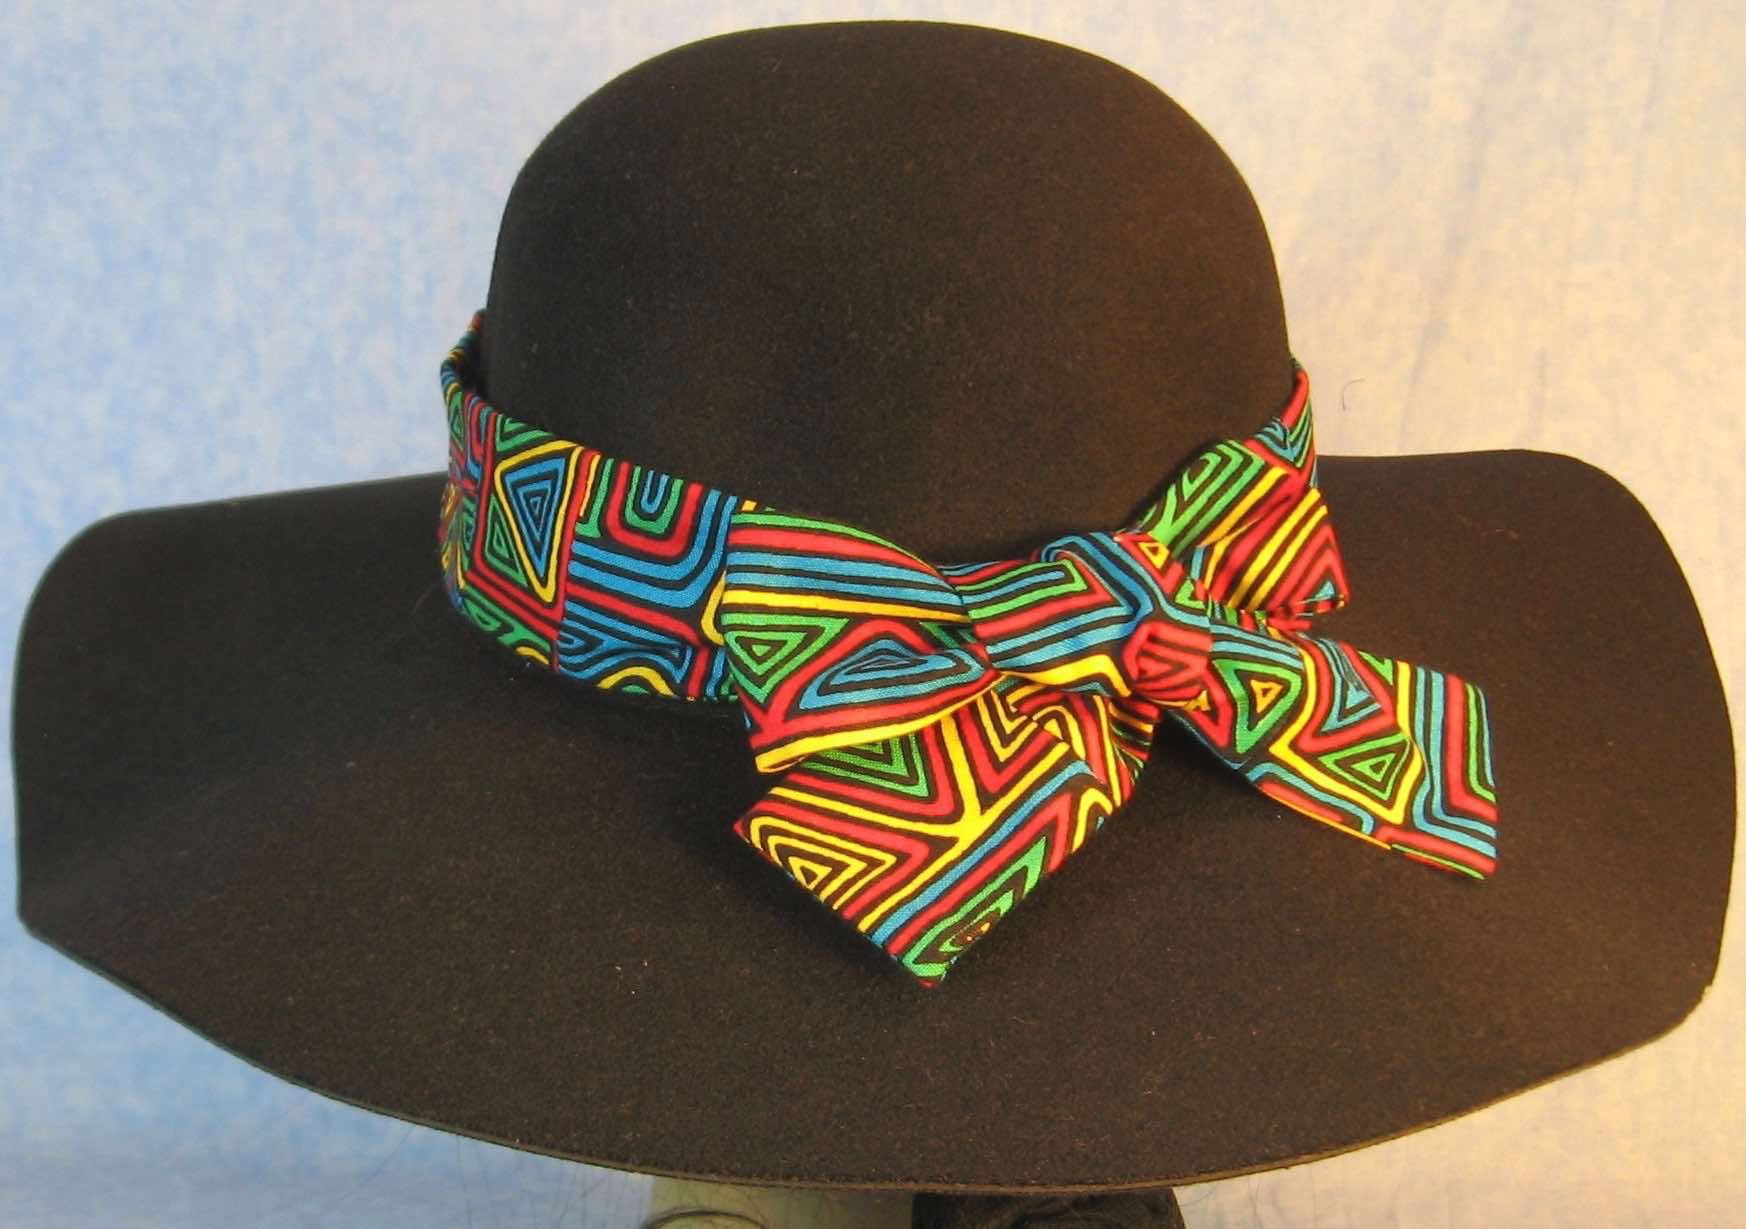 Hat Band-Blue Green Yellow Red Geometric Shapes-back